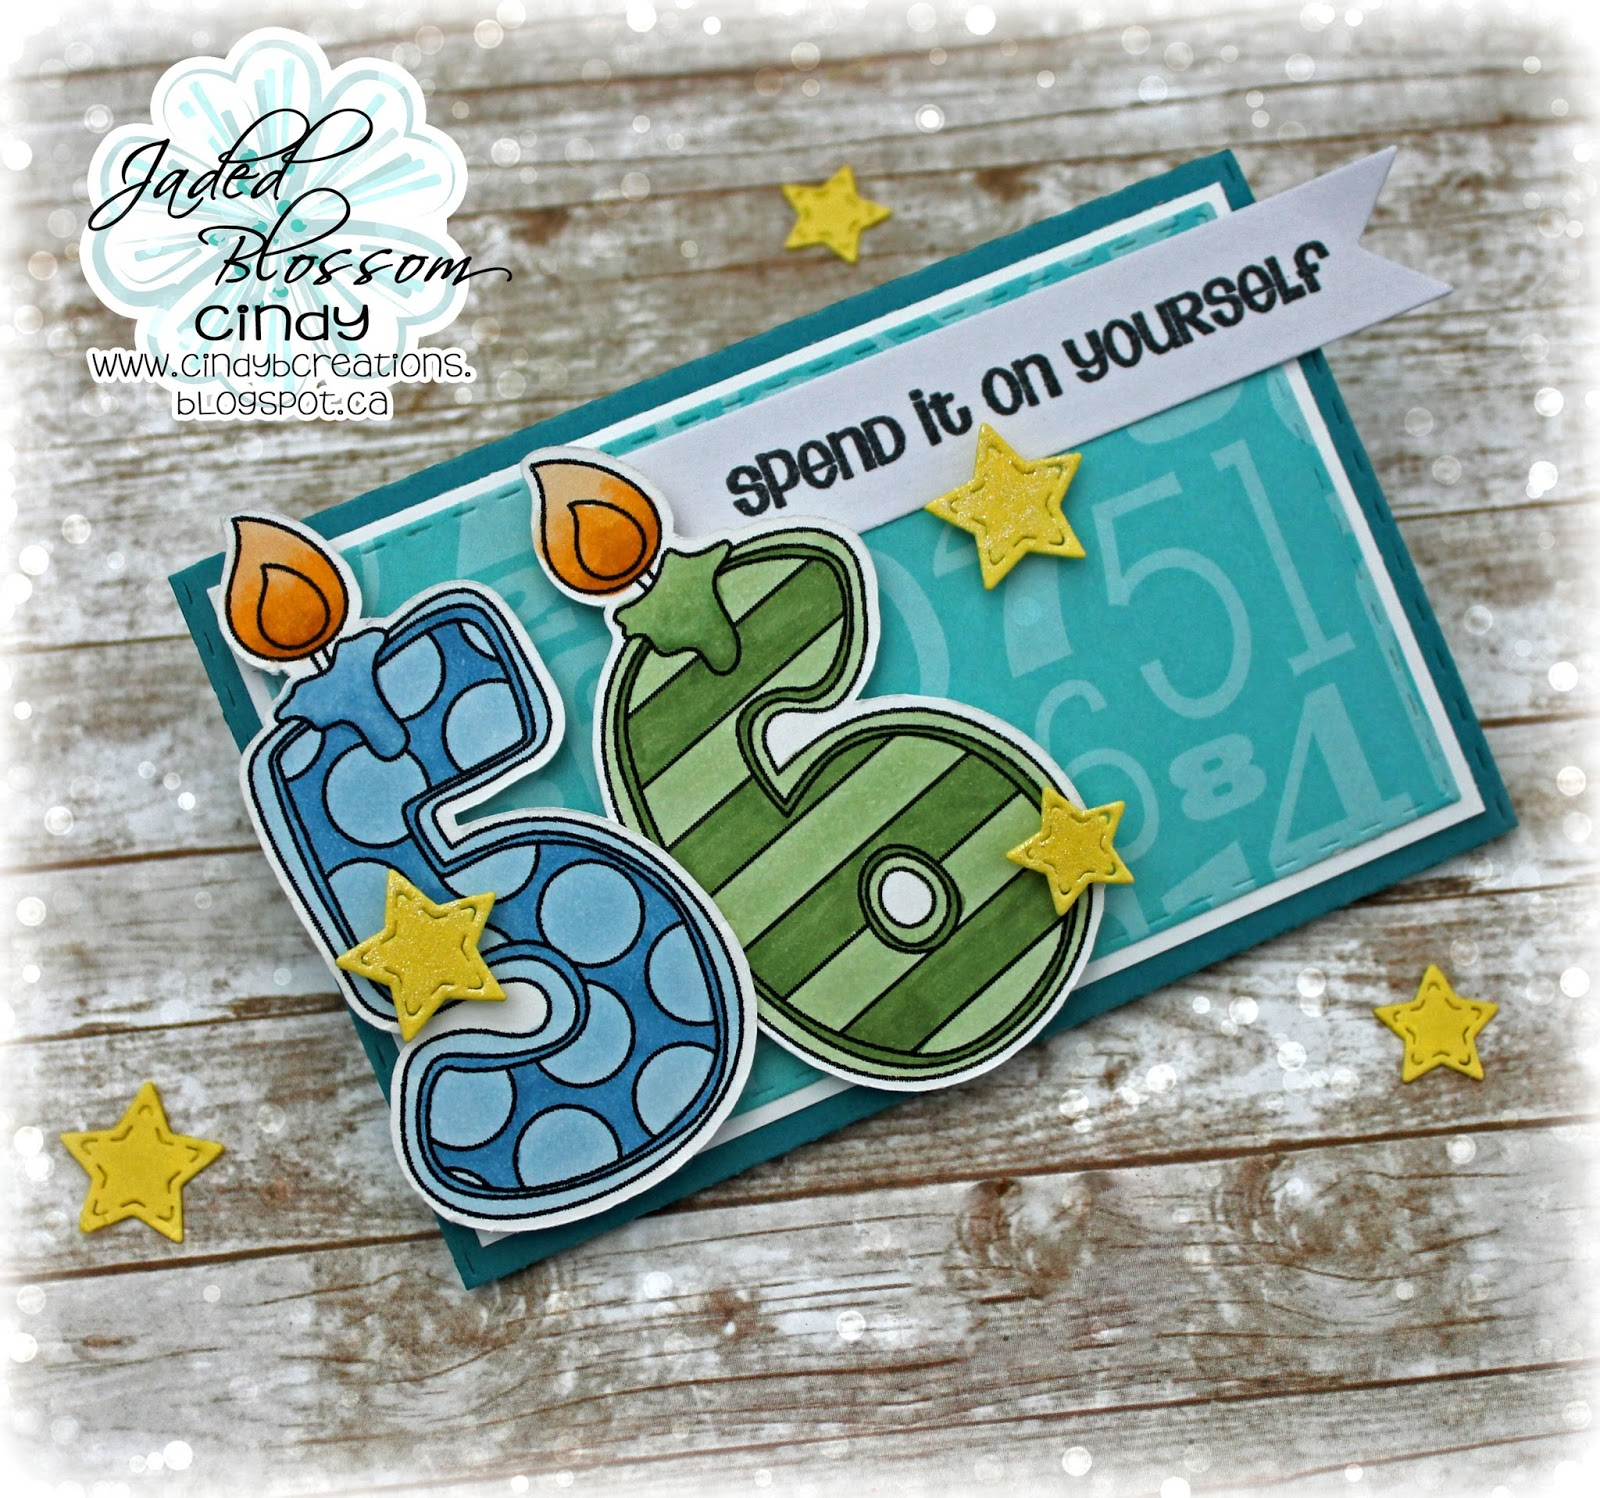 Jaded blossom fun gift card holders hope you like all my gift card holders for today solutioingenieria Image collections